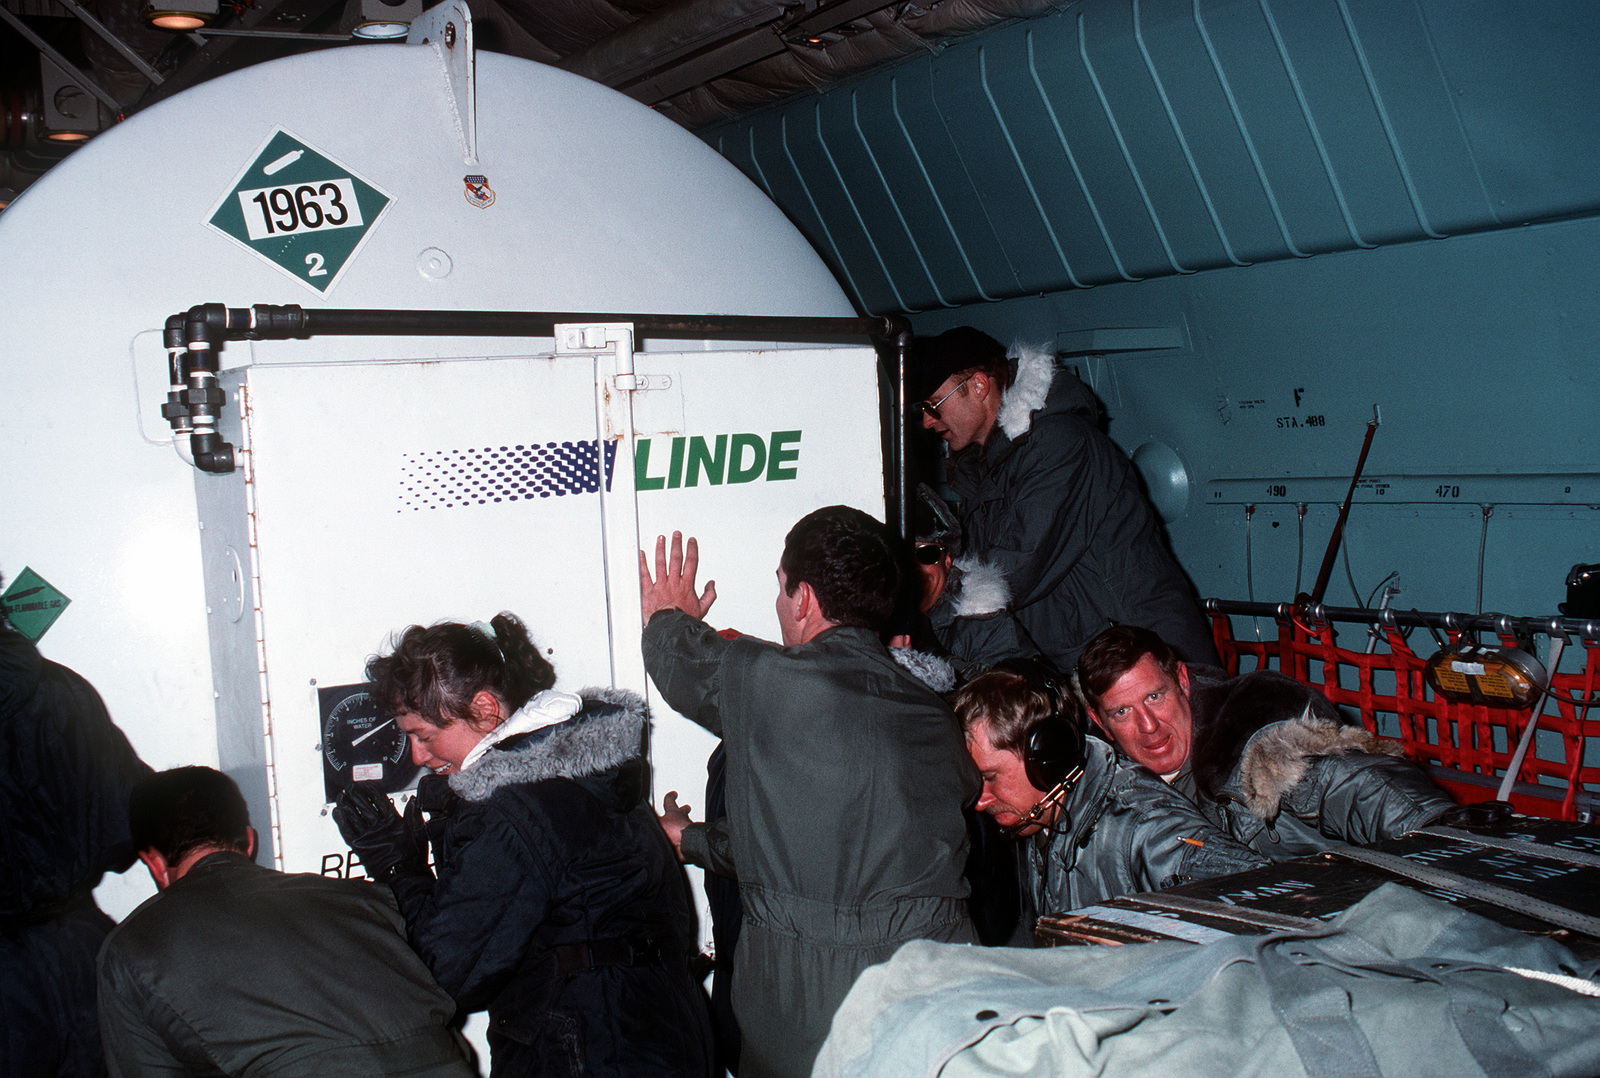 Flight crew and ground crew members pitch in to unload a